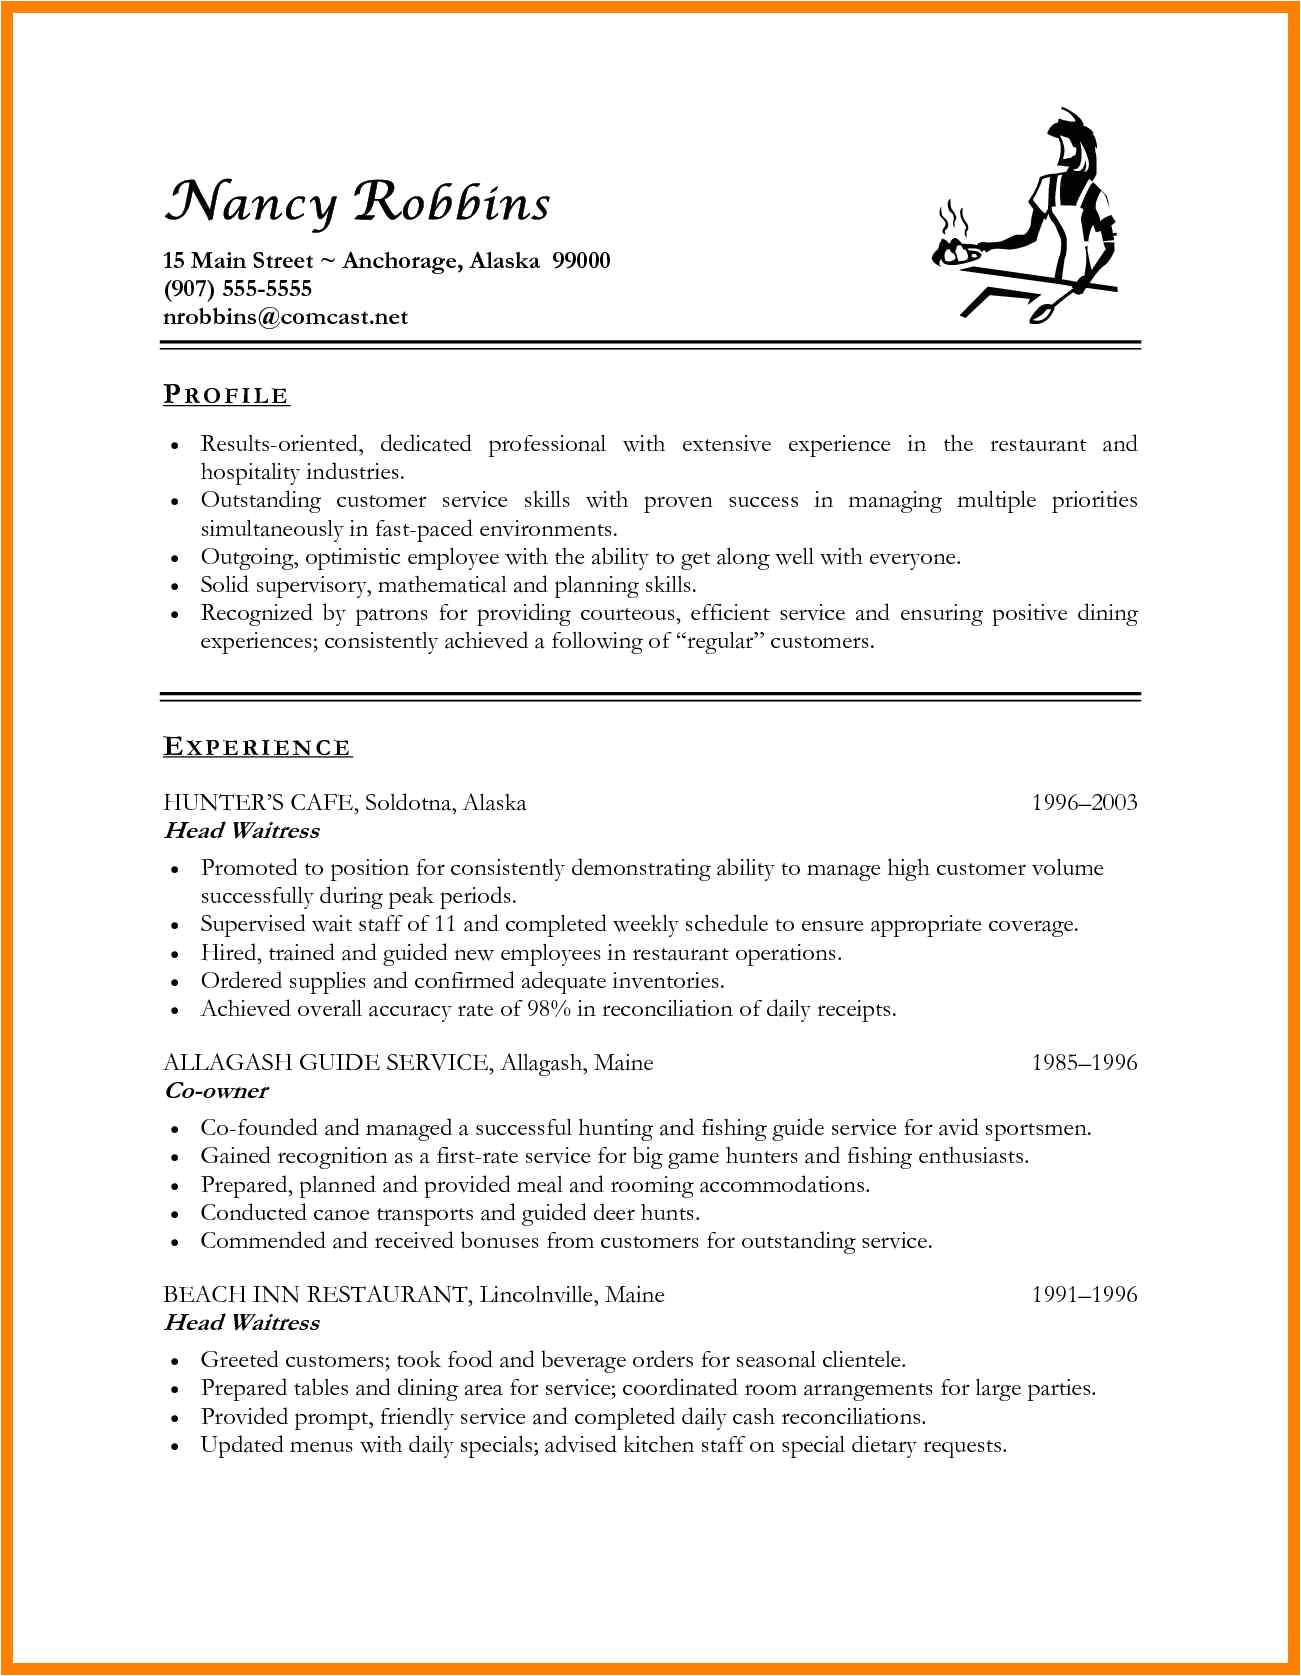 Hospitality Resume Templates Objectives for Resumes for Hospitality Industry Best